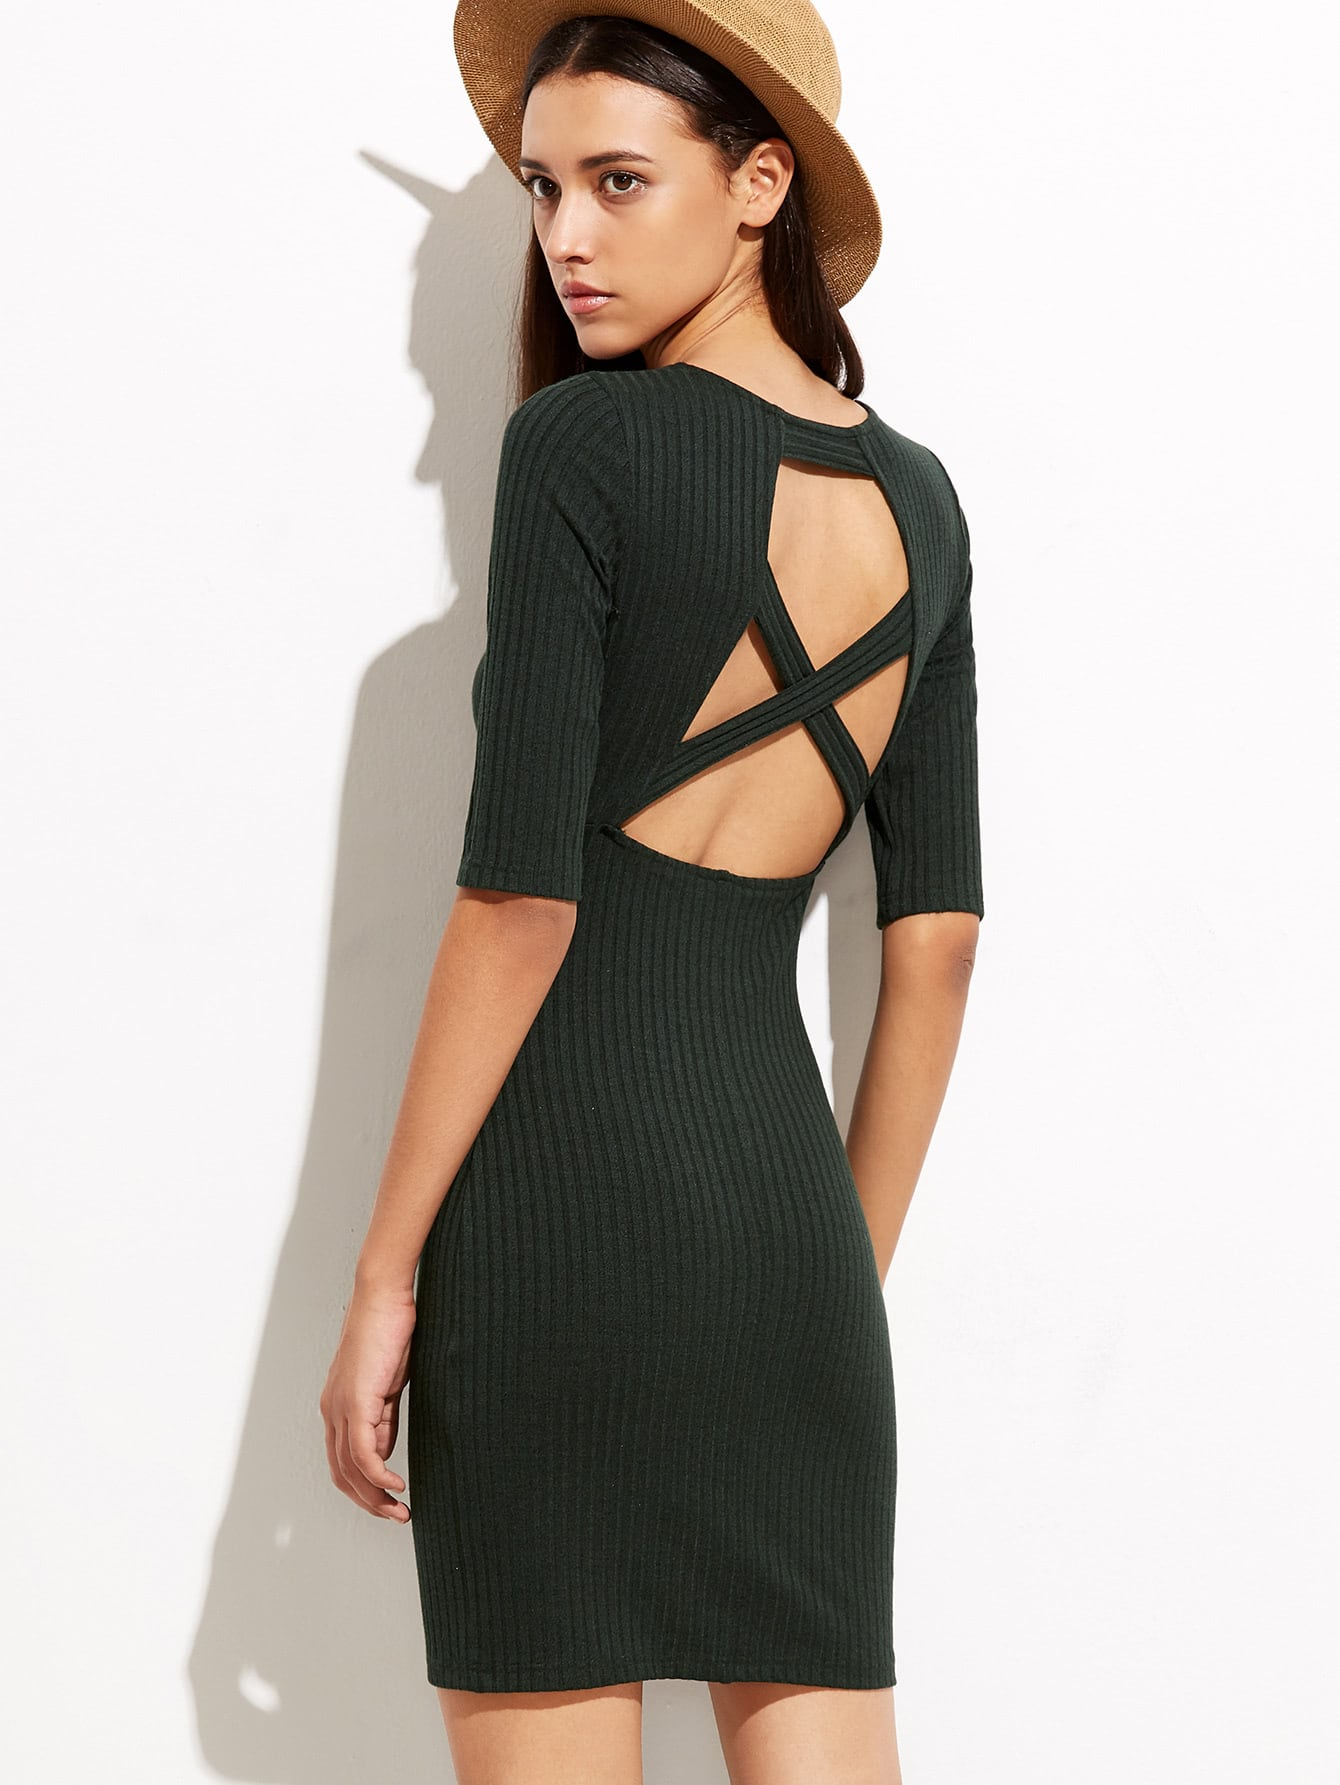 Olive Green Cutout Crisscross Back Ribbed Sheath Dress dress160921704